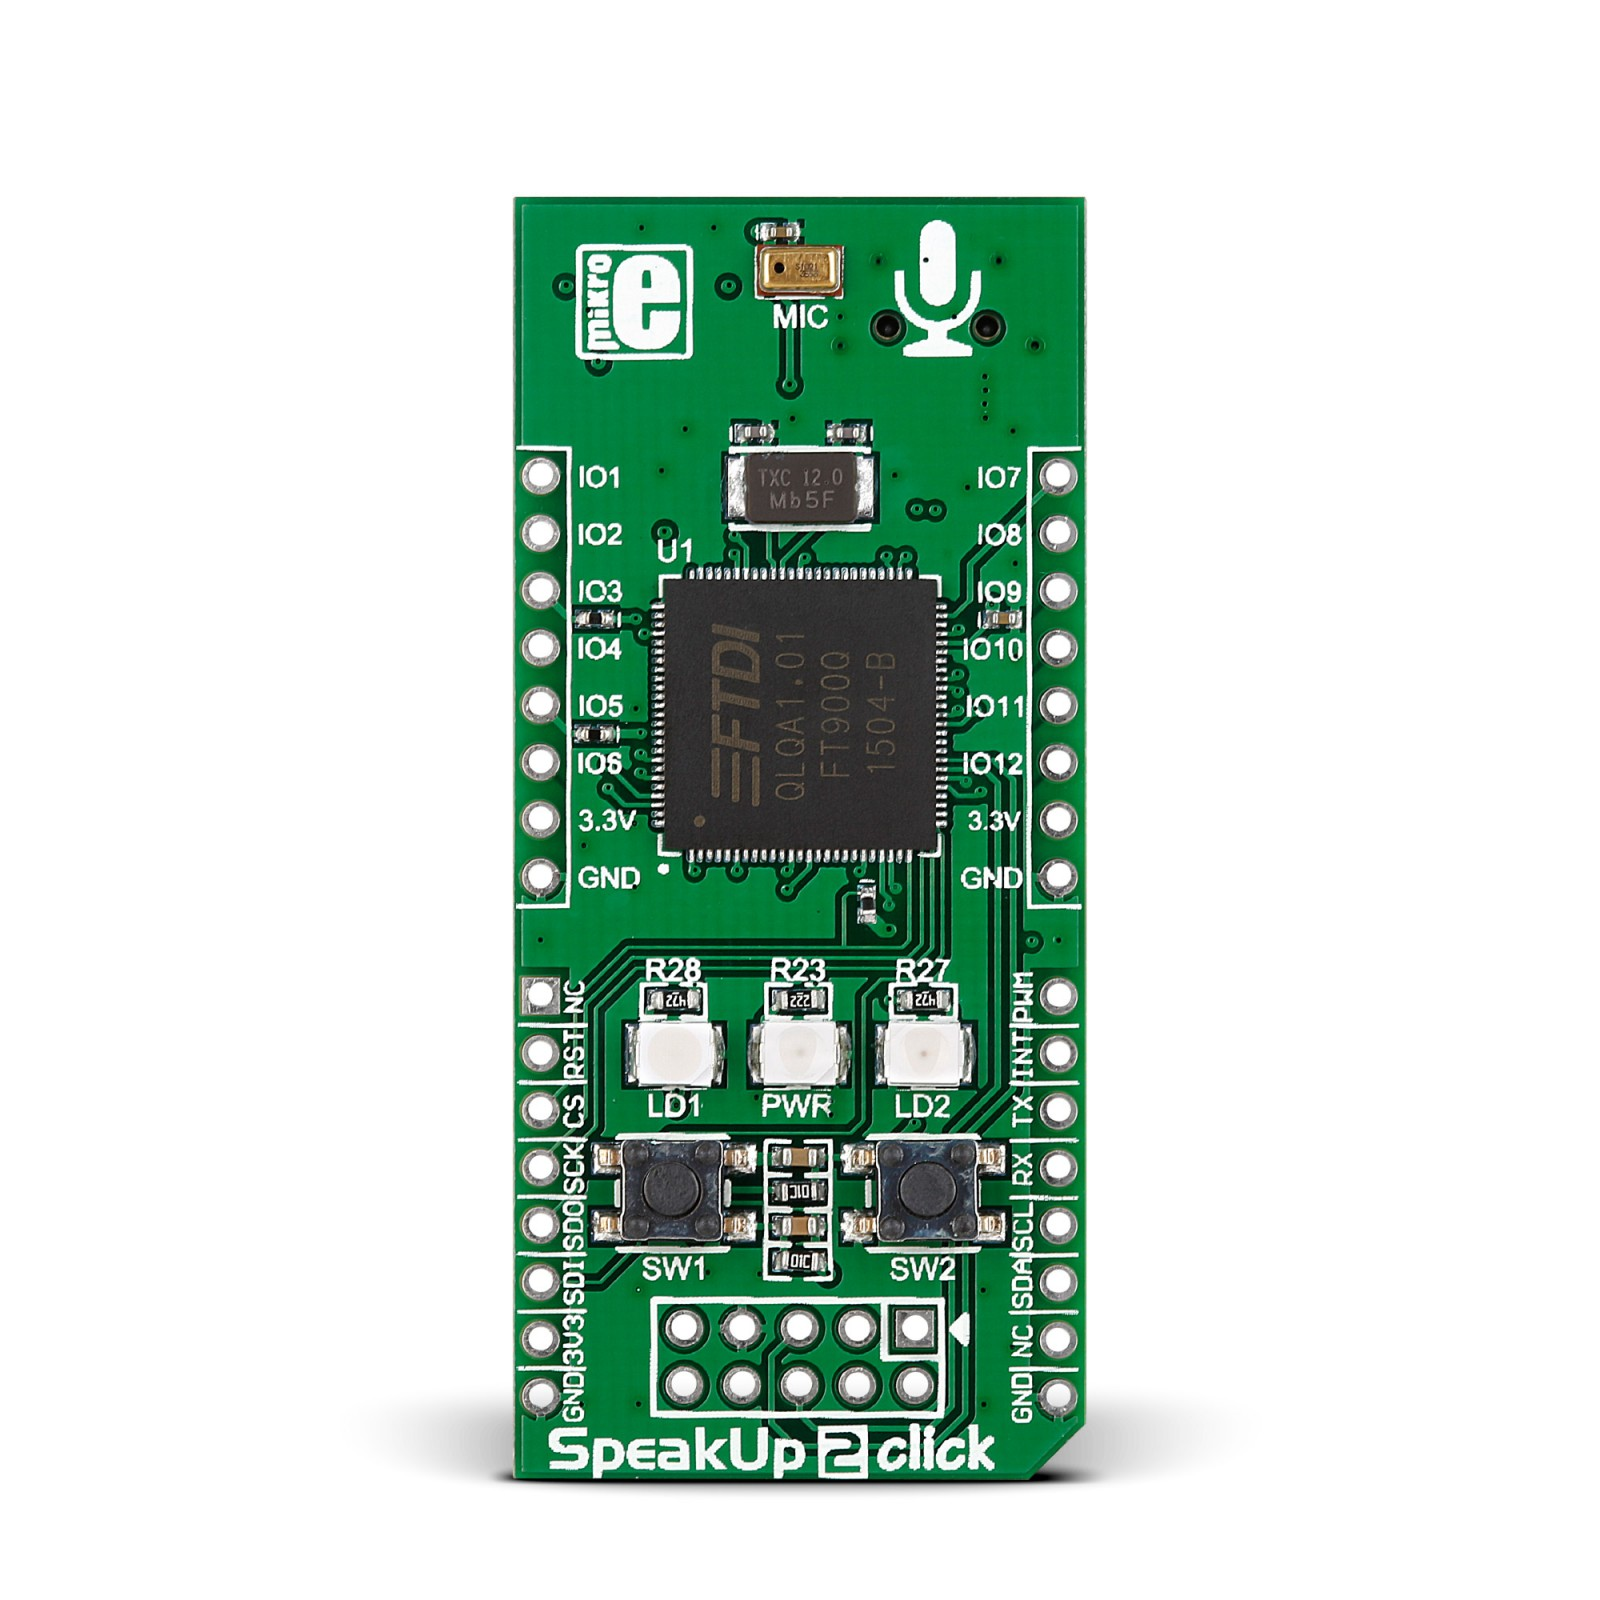 speakup 2 speech recognition click board for recognizing over 100